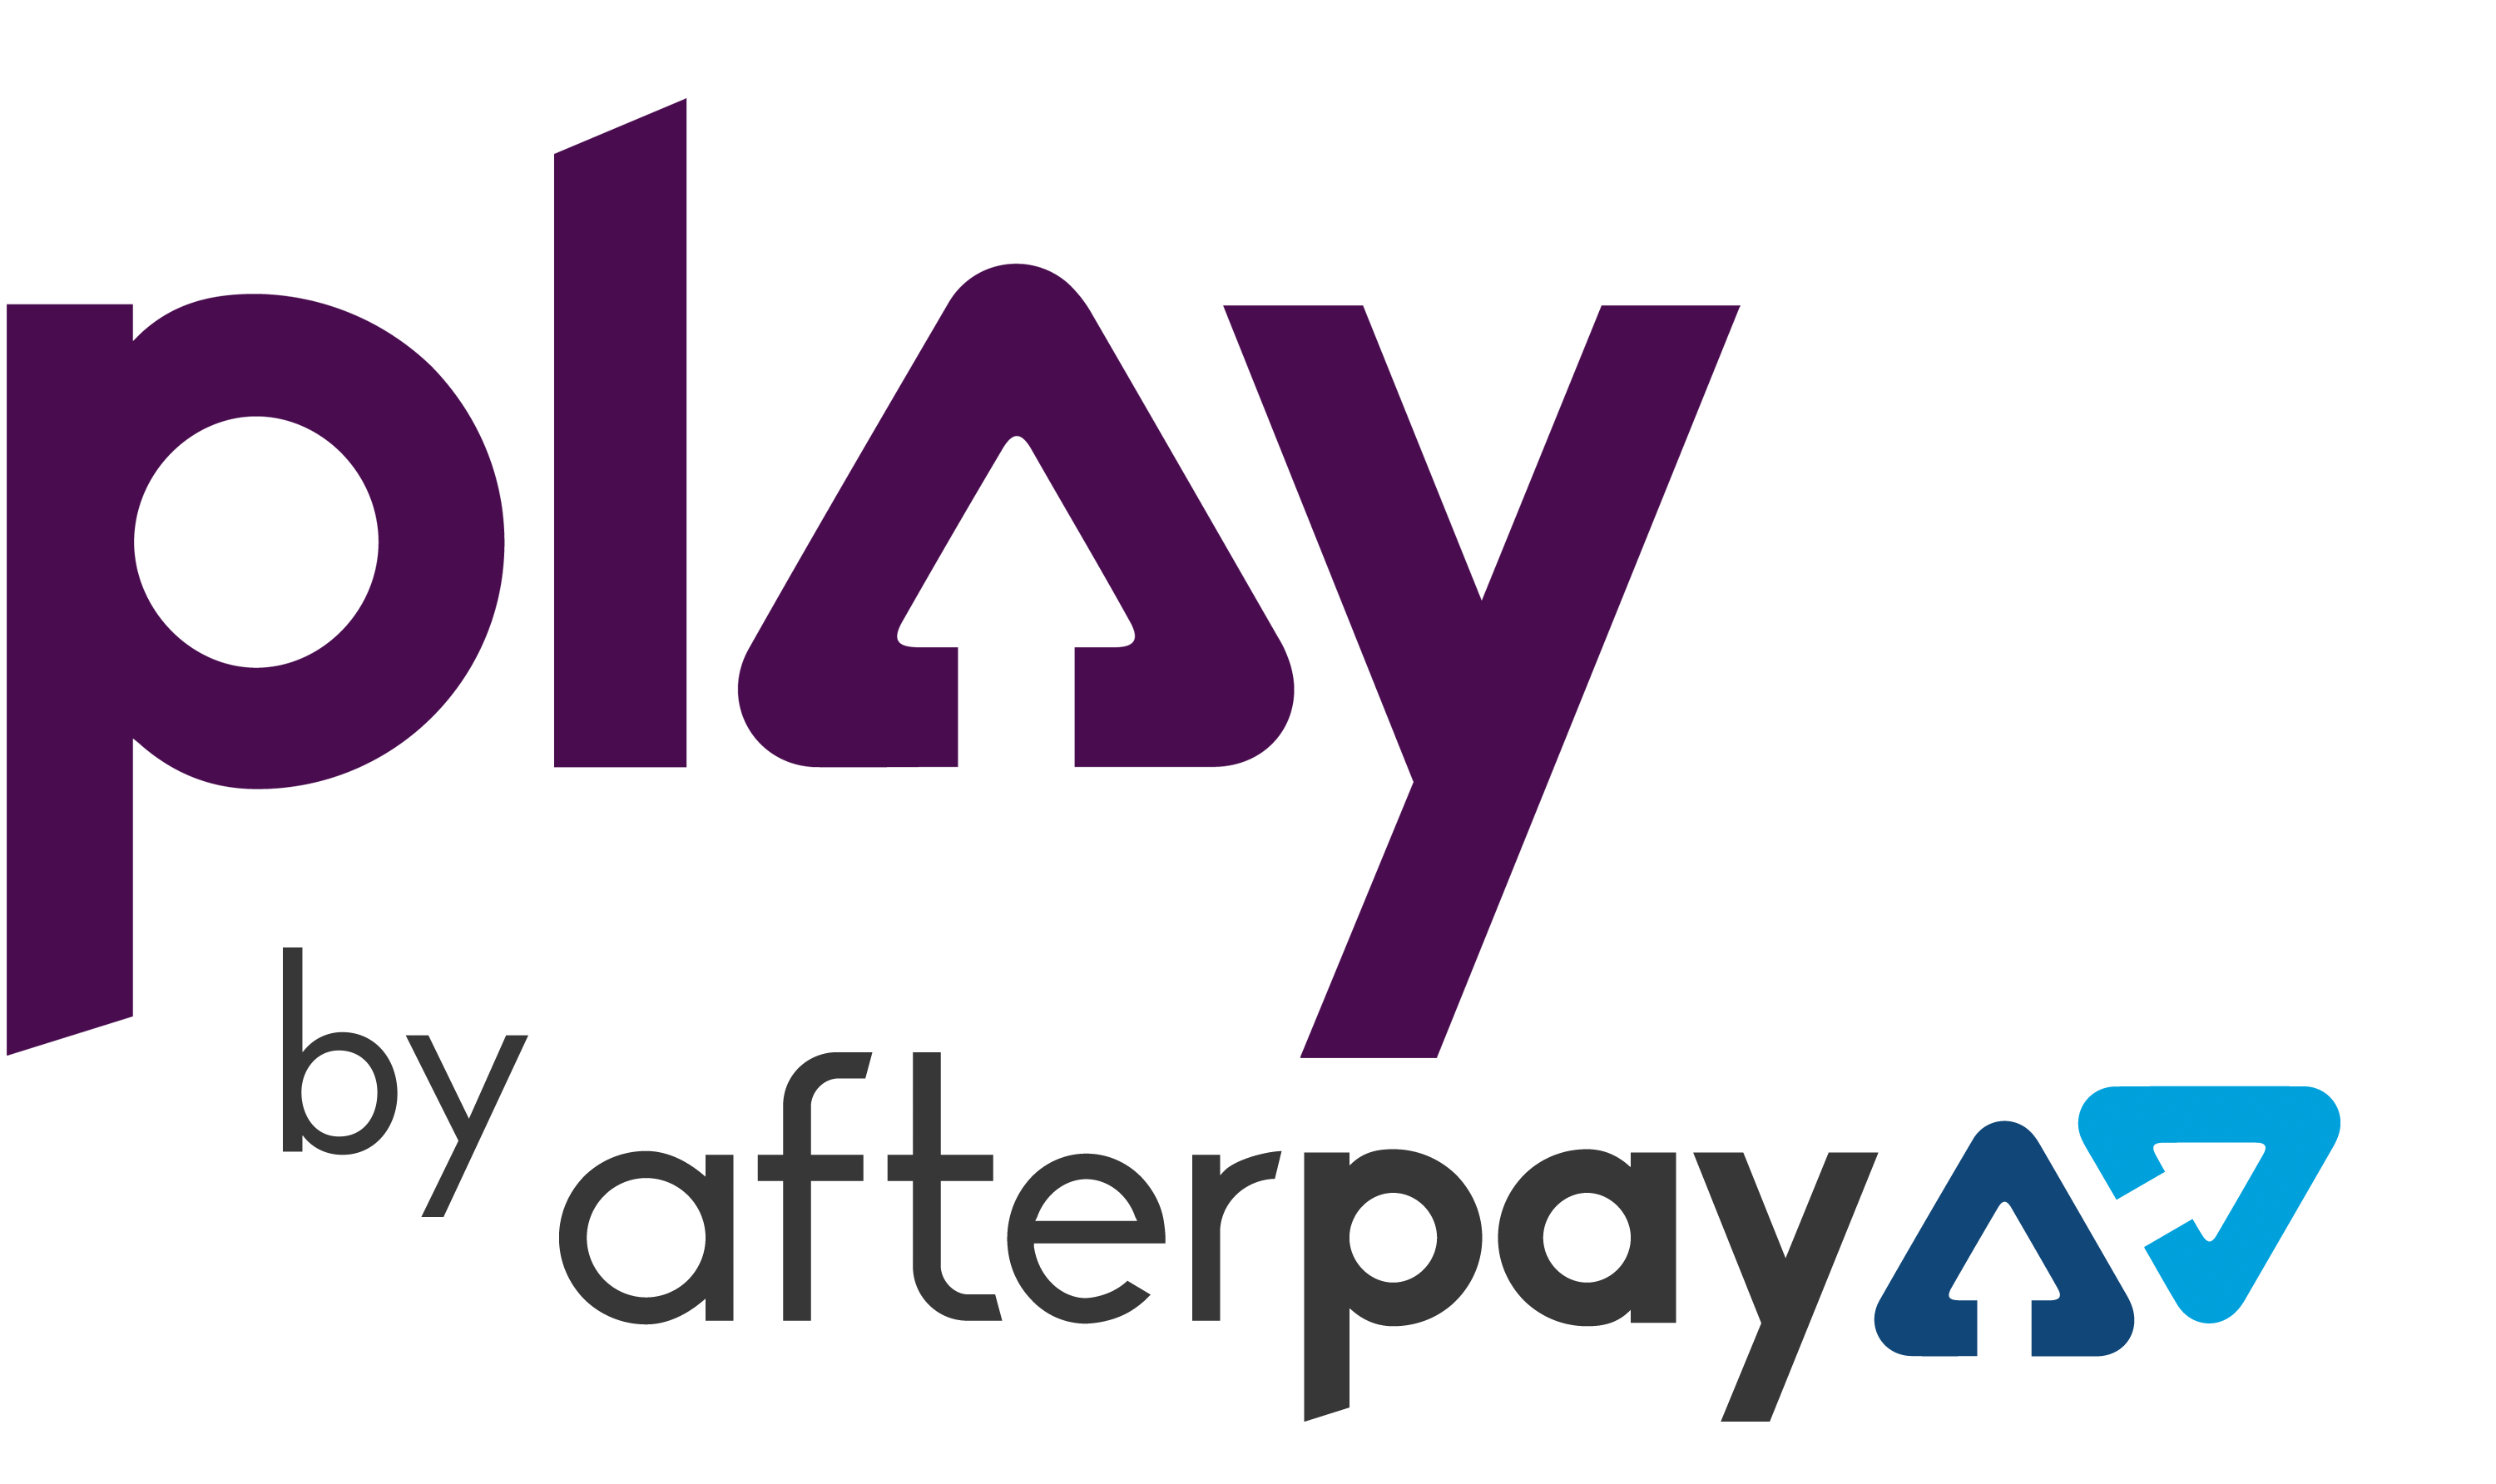 Afterpay-backed travel start-up playing to win Millennial customers